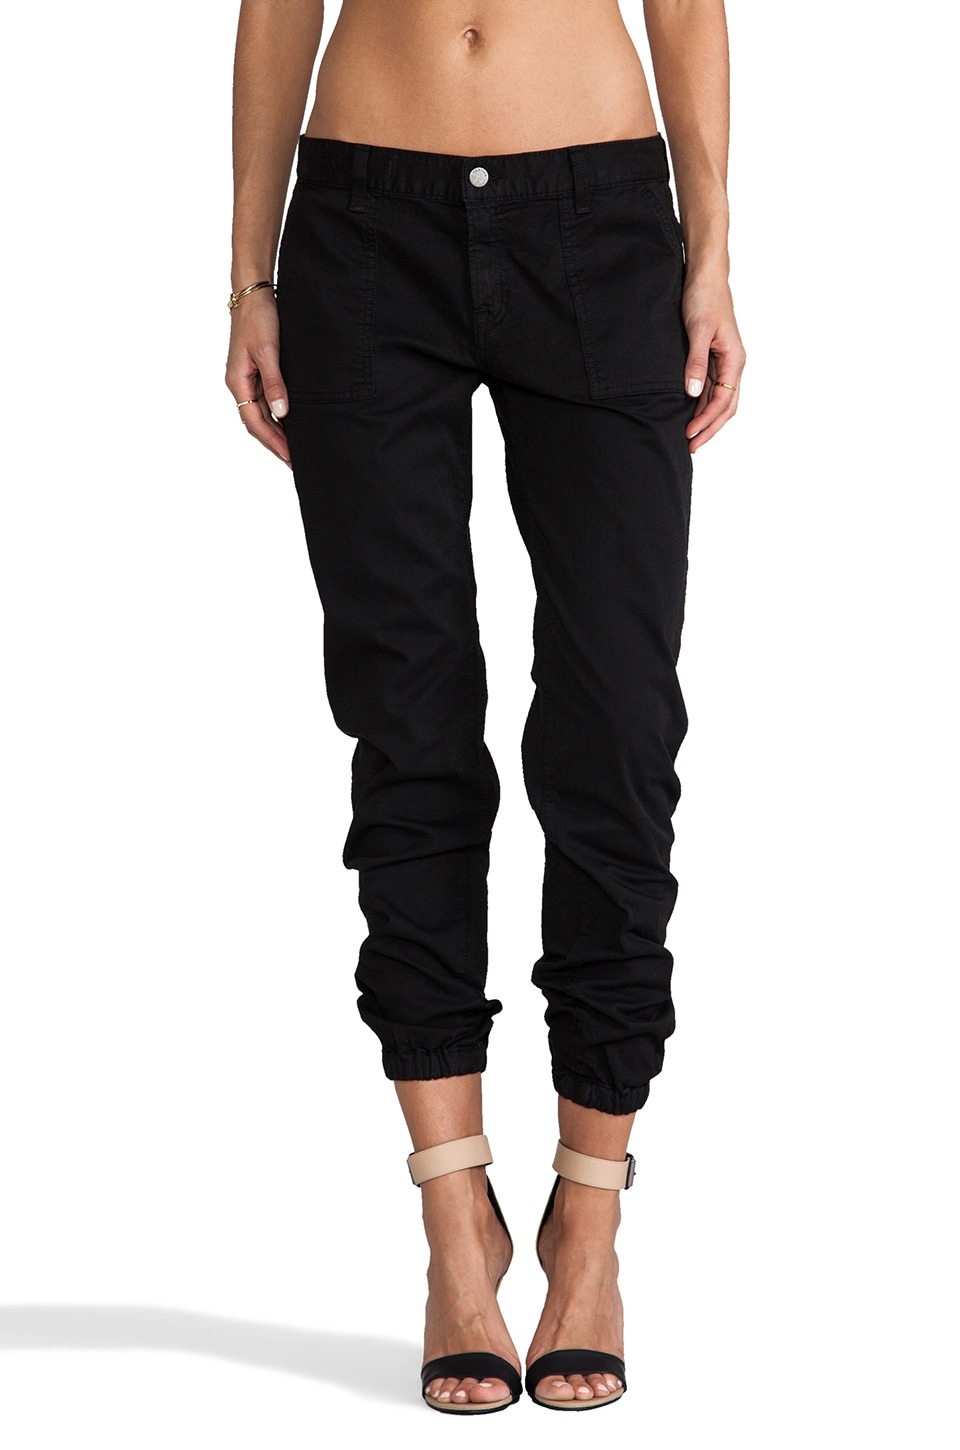 TEXTILE Elizabeth and James Oliver Pants in Black